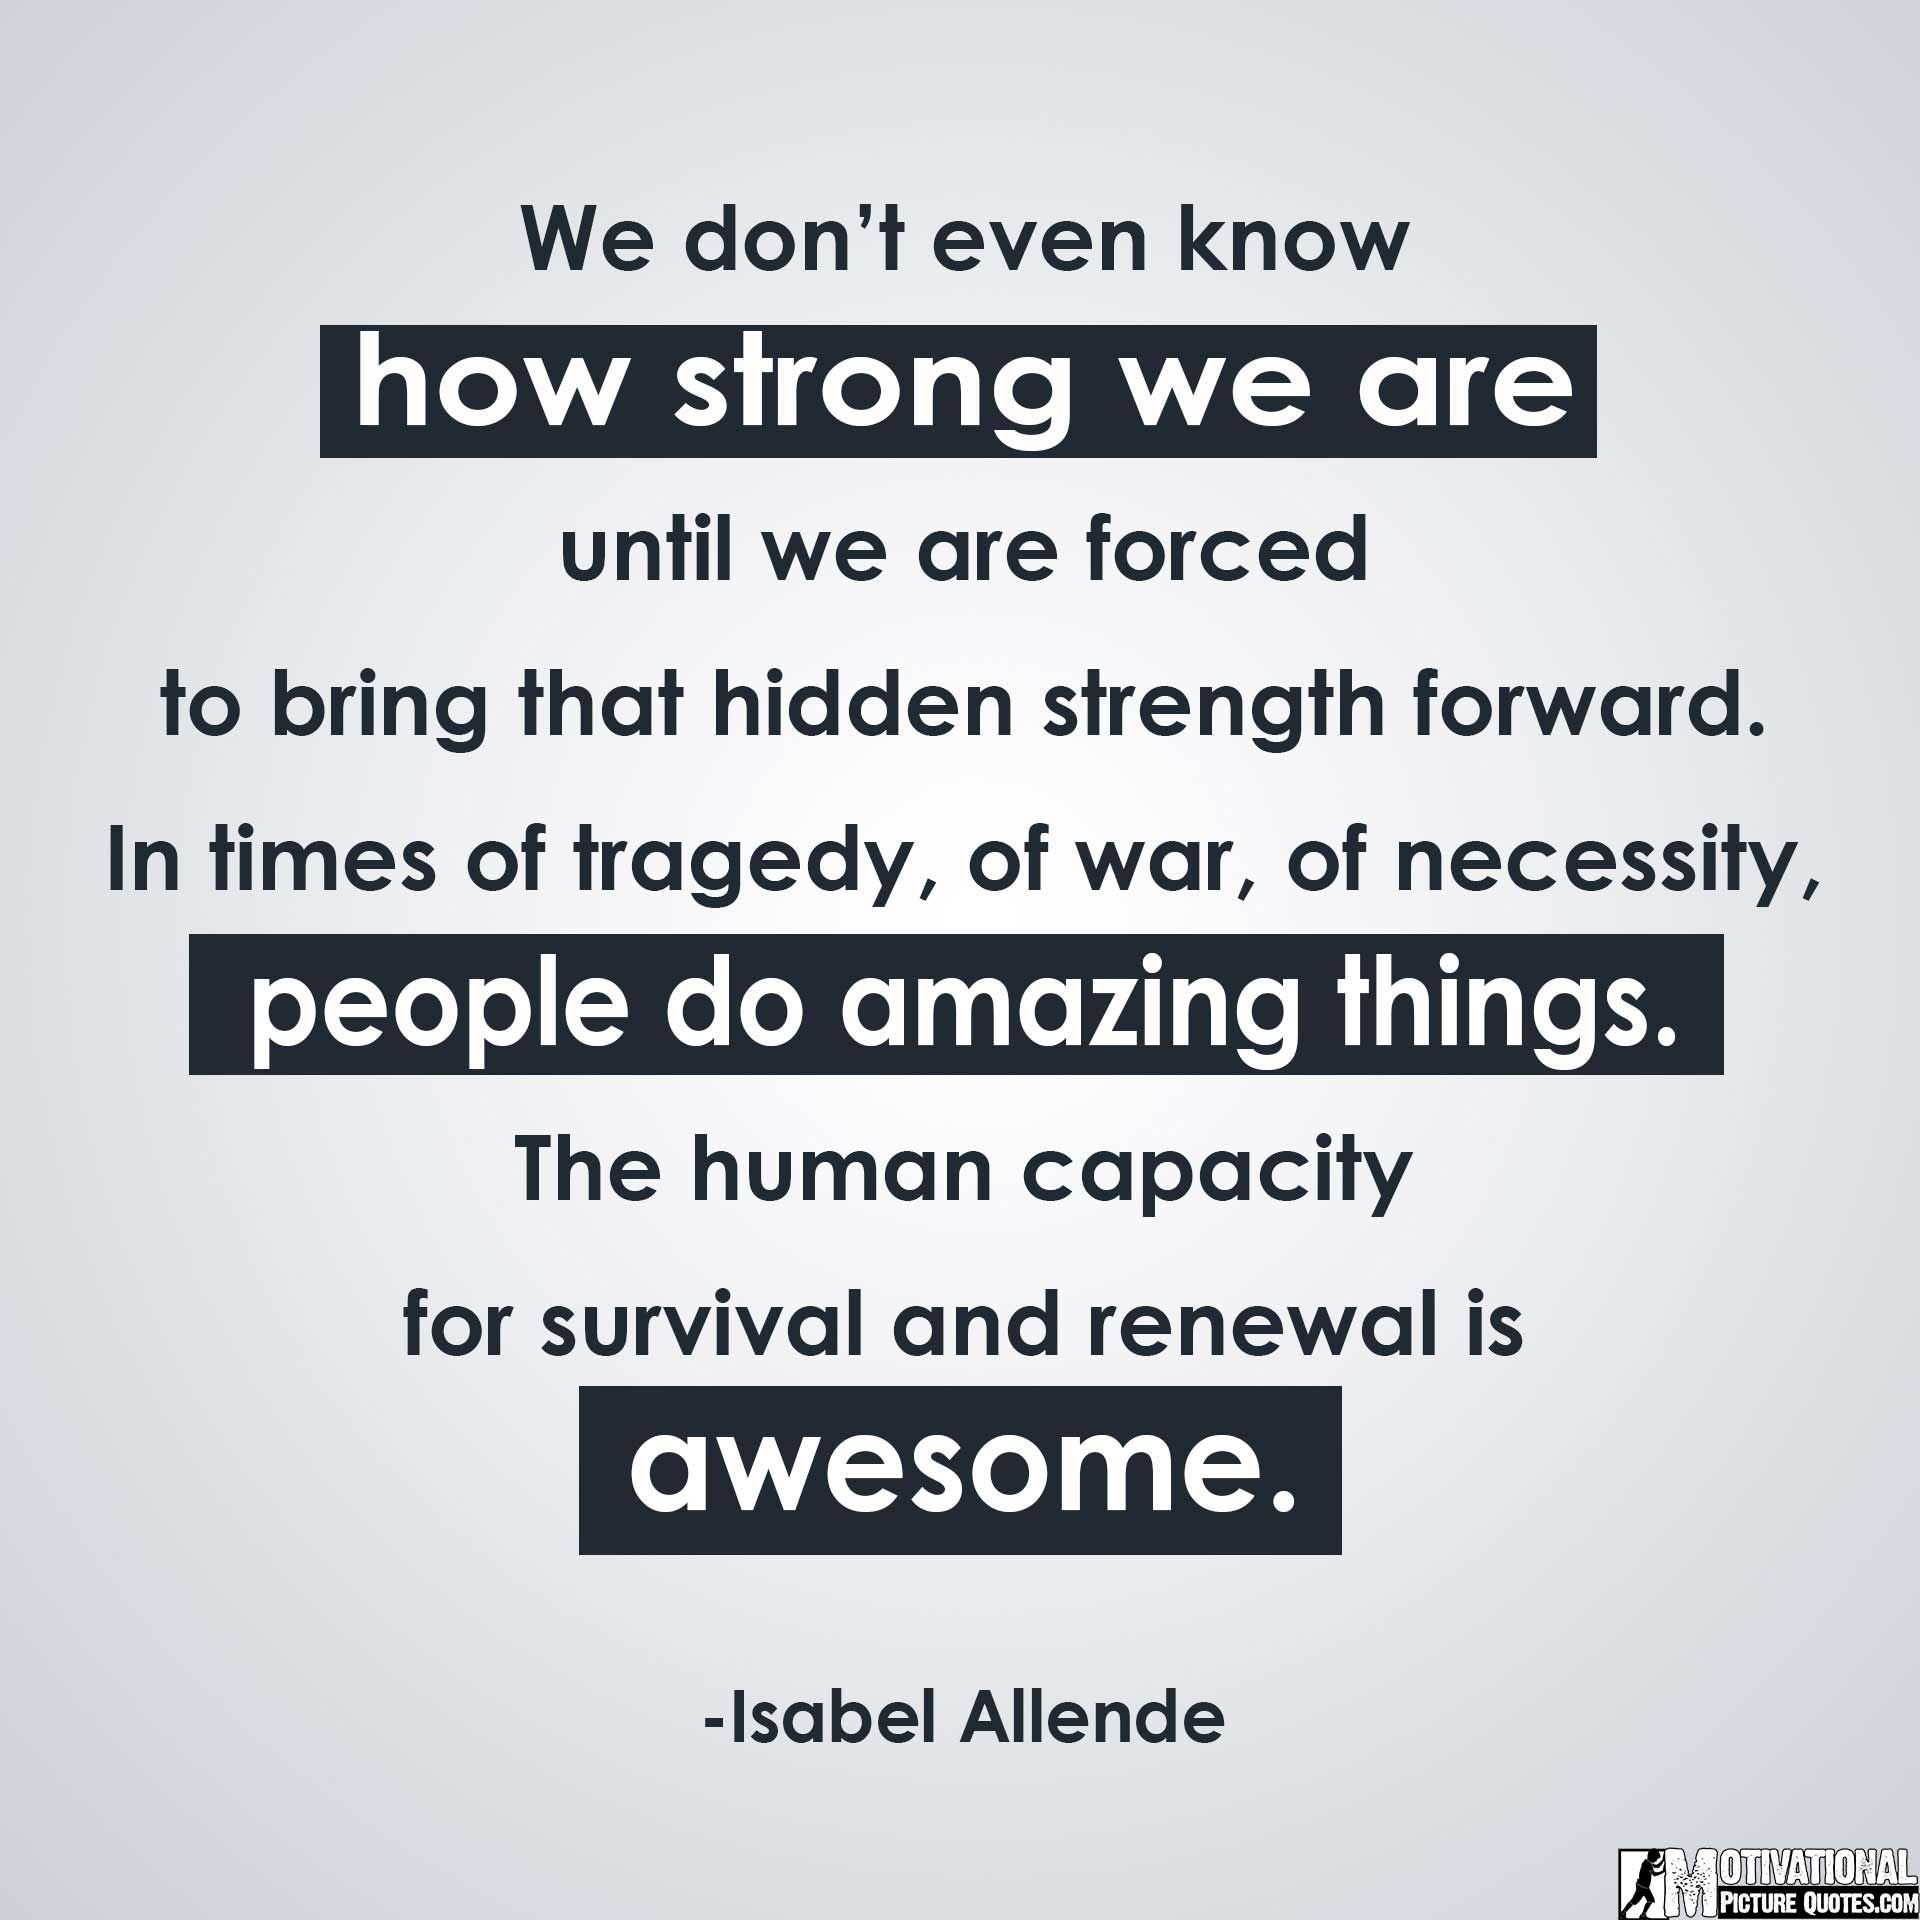 Quotes About Being Strong Awesome 30 Inspirational Quotes About Being Strong With Images  Insbright